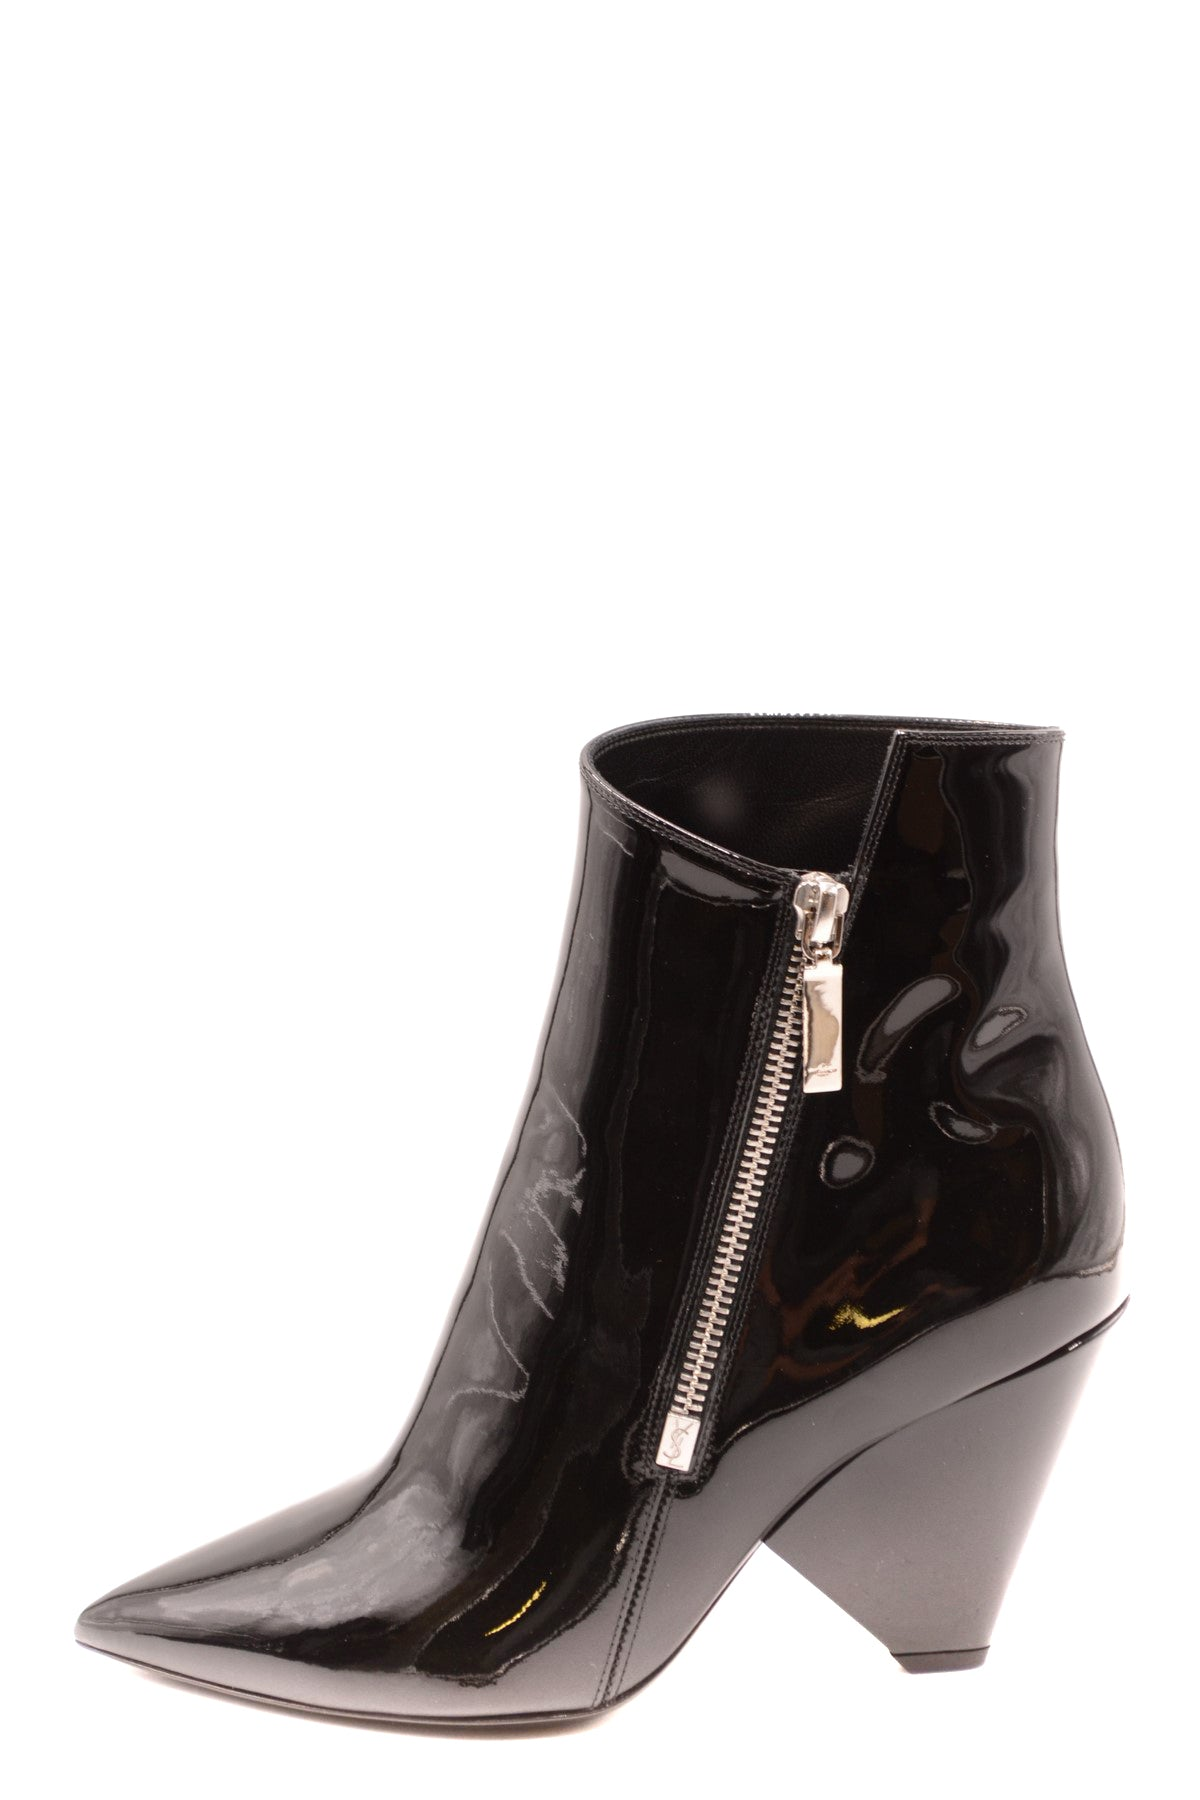 Shoes Saint Laurent-Women's Fashion - Women's Shoes - Women's Boots-Product Details Terms: New With LabelMain Color: BlackType Of Accessory: BootsSeason: Fall / WinterMade In: ItalyGender: WomanHeel'S Height: 7Size: EuComposition: Leather 100%Year: 2019Manufacturer Part Number: 543838 0Np00 1000-Keyomi-Sook